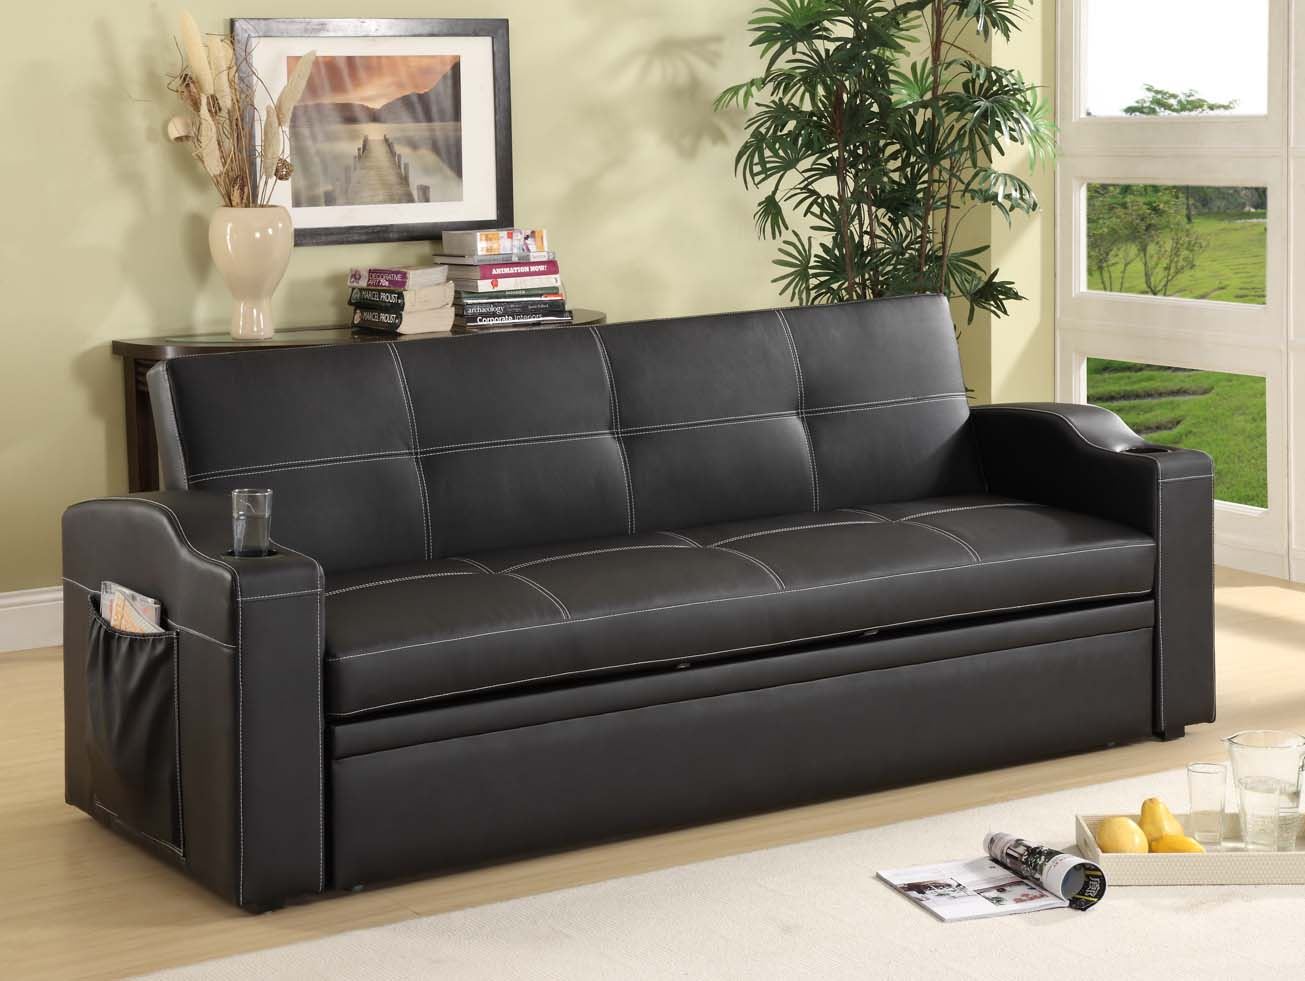 Sofa North York Maple Furniture Home Furniture Kitchens Beds Sofas Maple